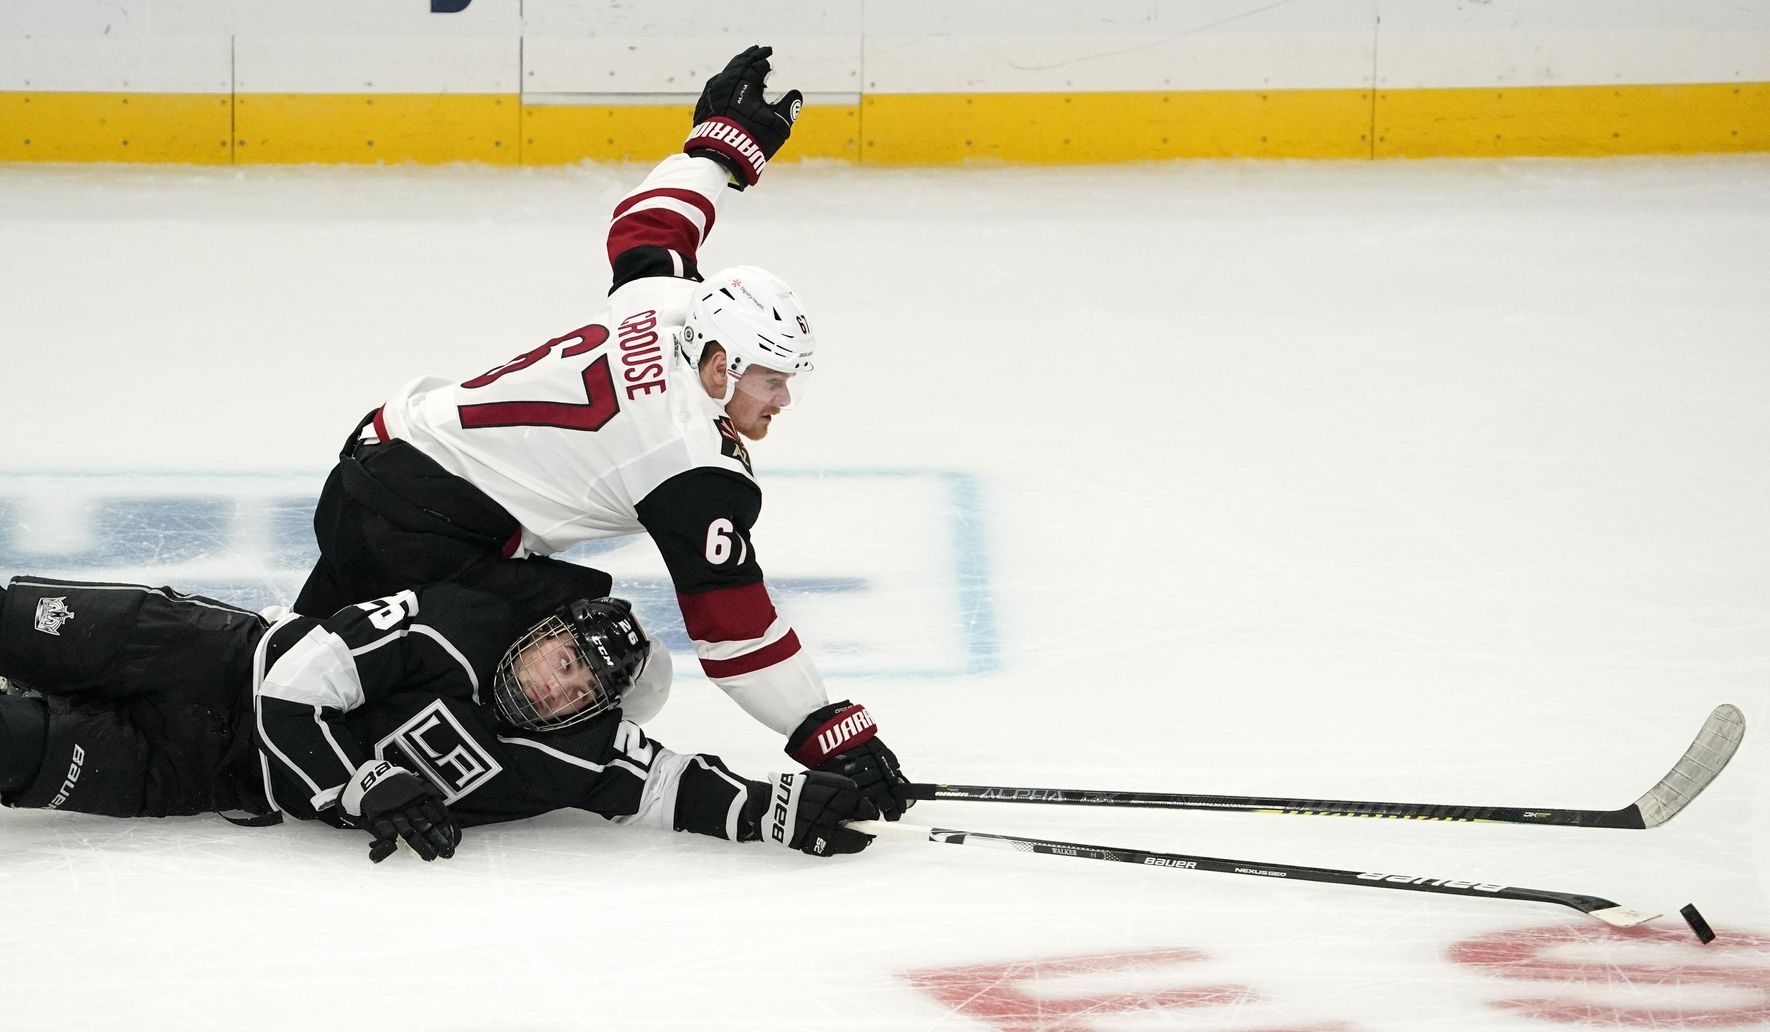 Coyotes_kings_hockey_73626_c0-256-5493-3458_s1770x1032